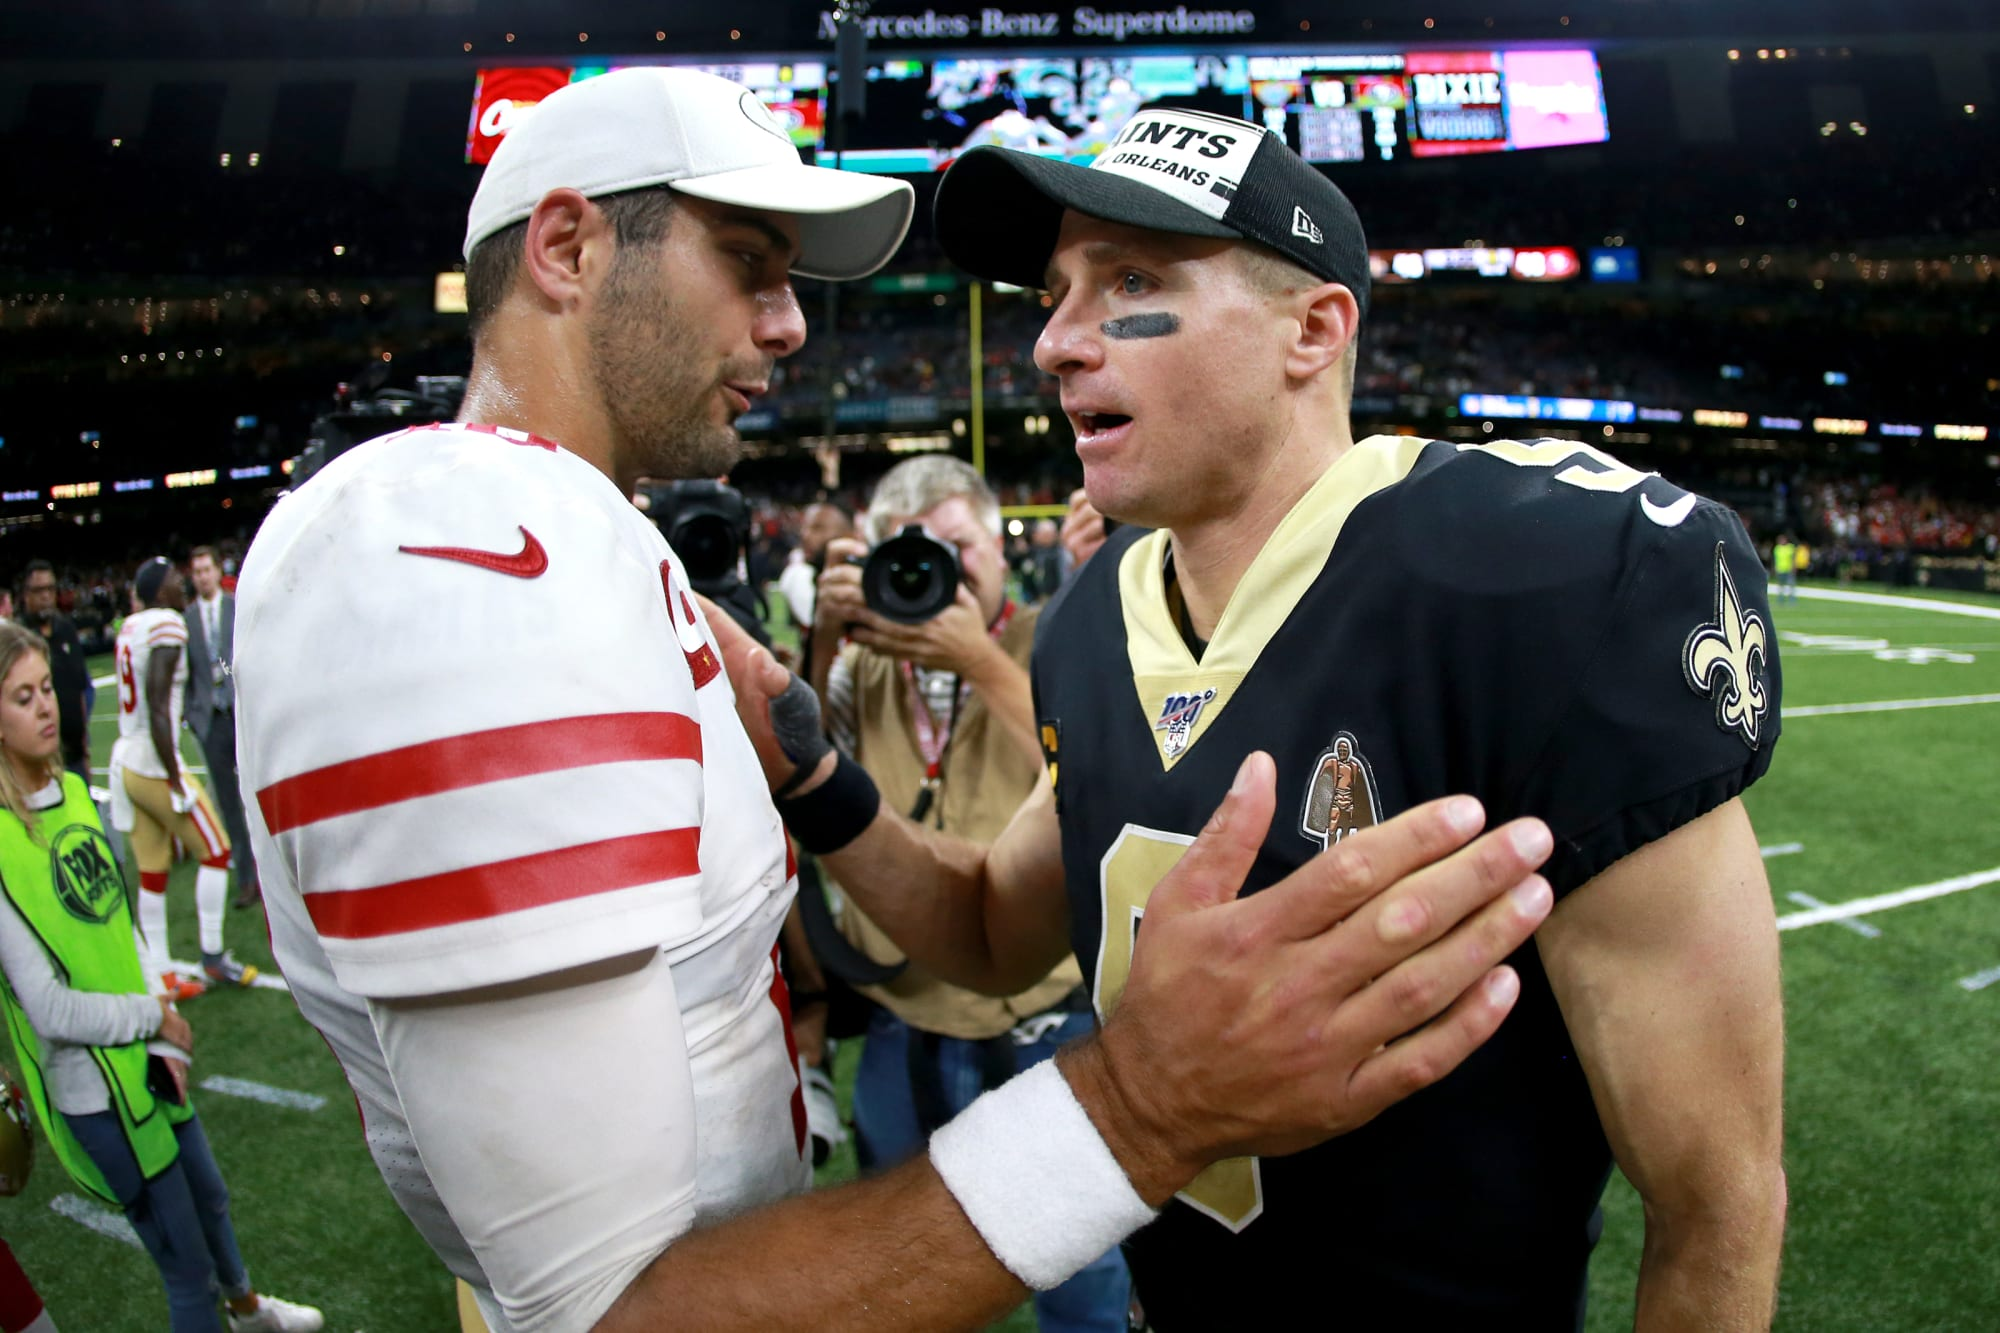 Top 4 teams to challenge 49ers for NFC crown in 2020